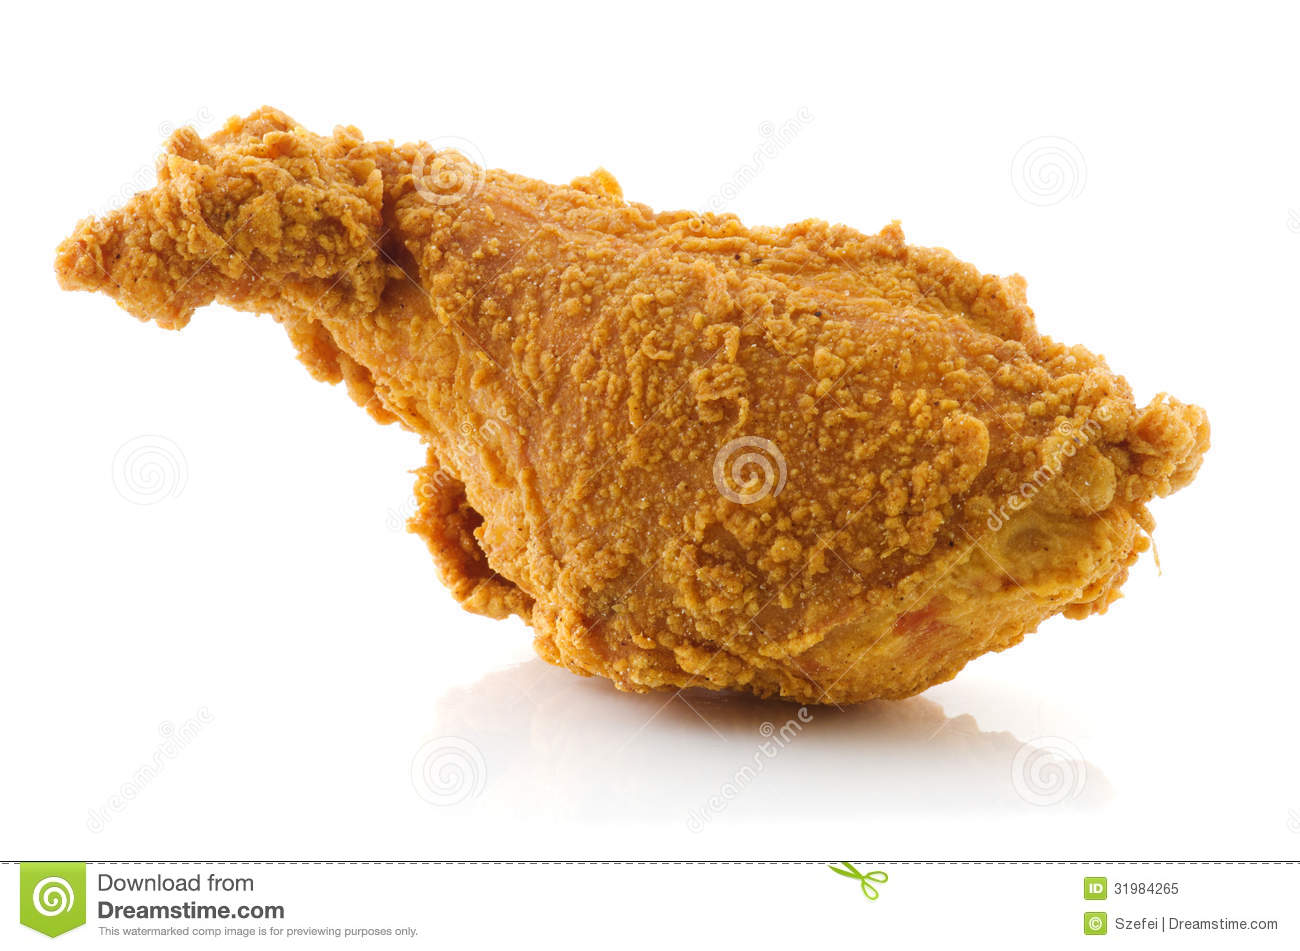 Fried Chicken Drumstick Royalty Free Stock Photo - Image: 31984265